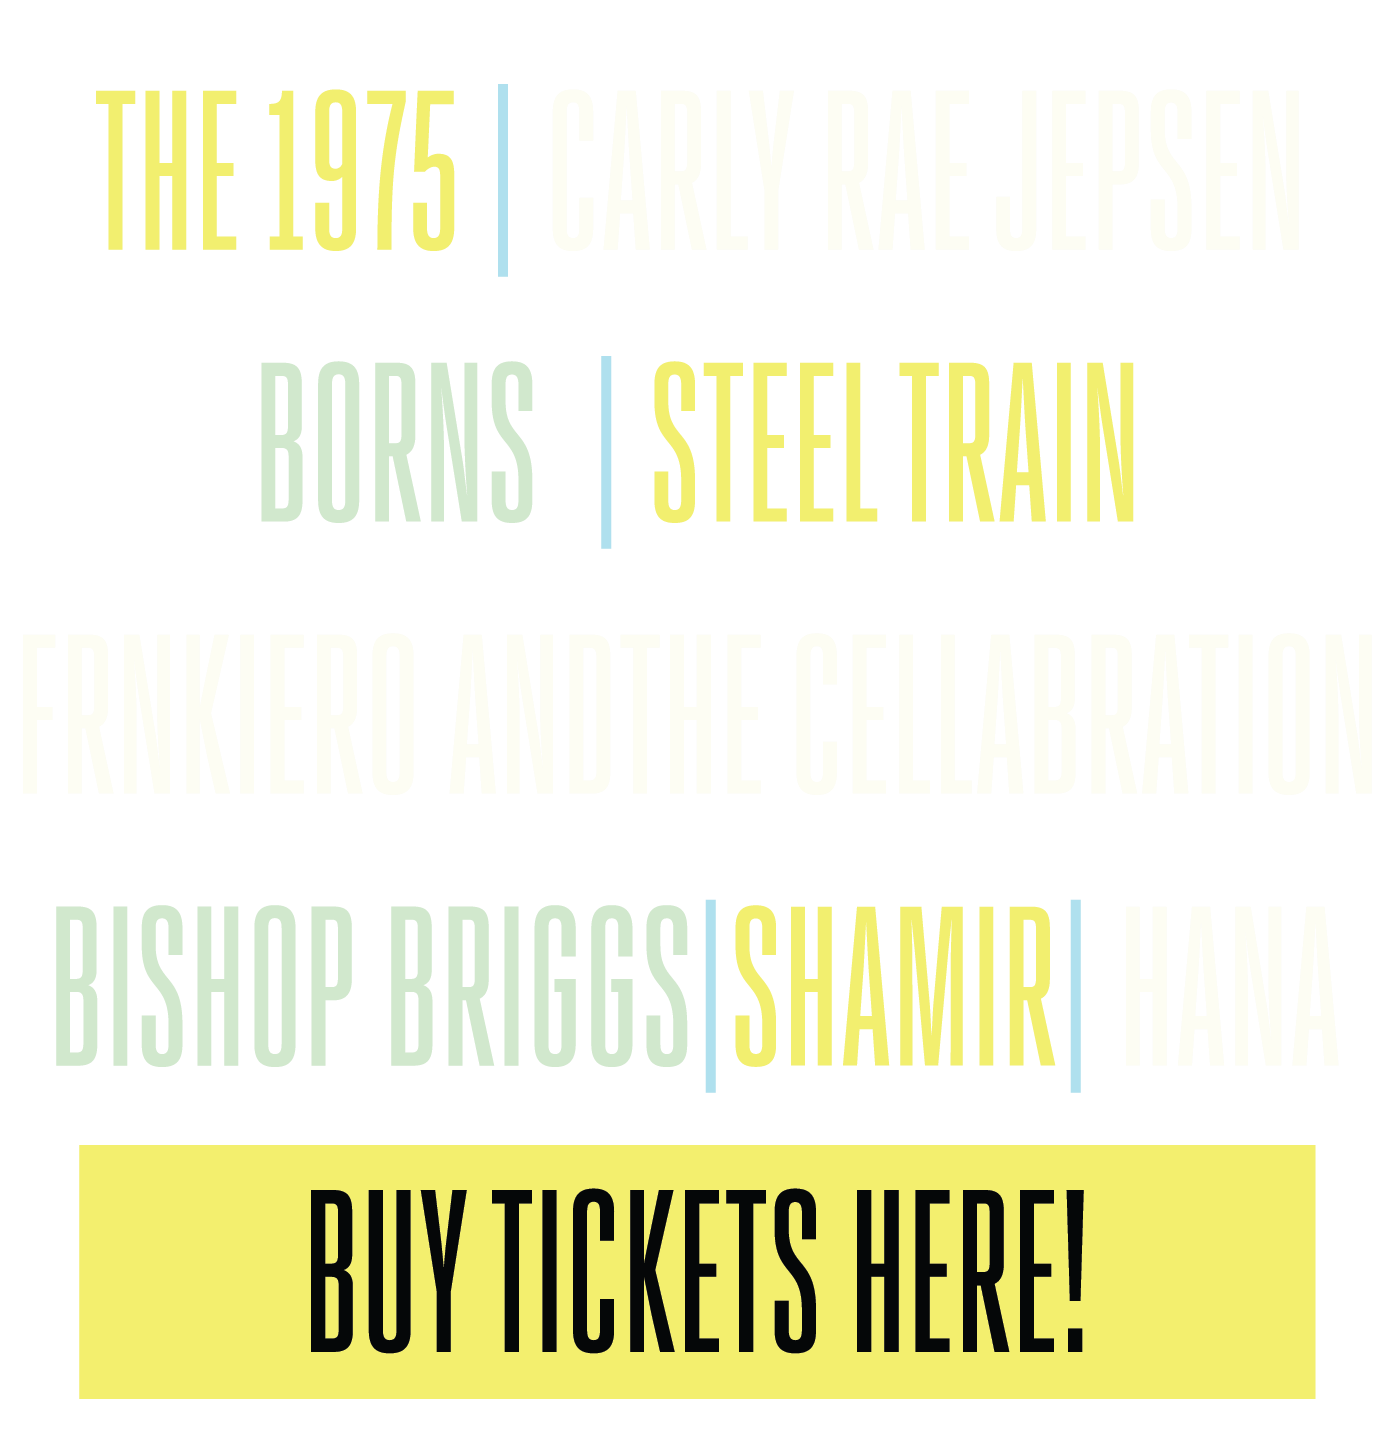 The 1975 | Carley Rae Jepsen | BORNS | Steel Train | FRNKIERO ANDTHE CELLABRATION | Bishop Briggs | Shamir | Hana